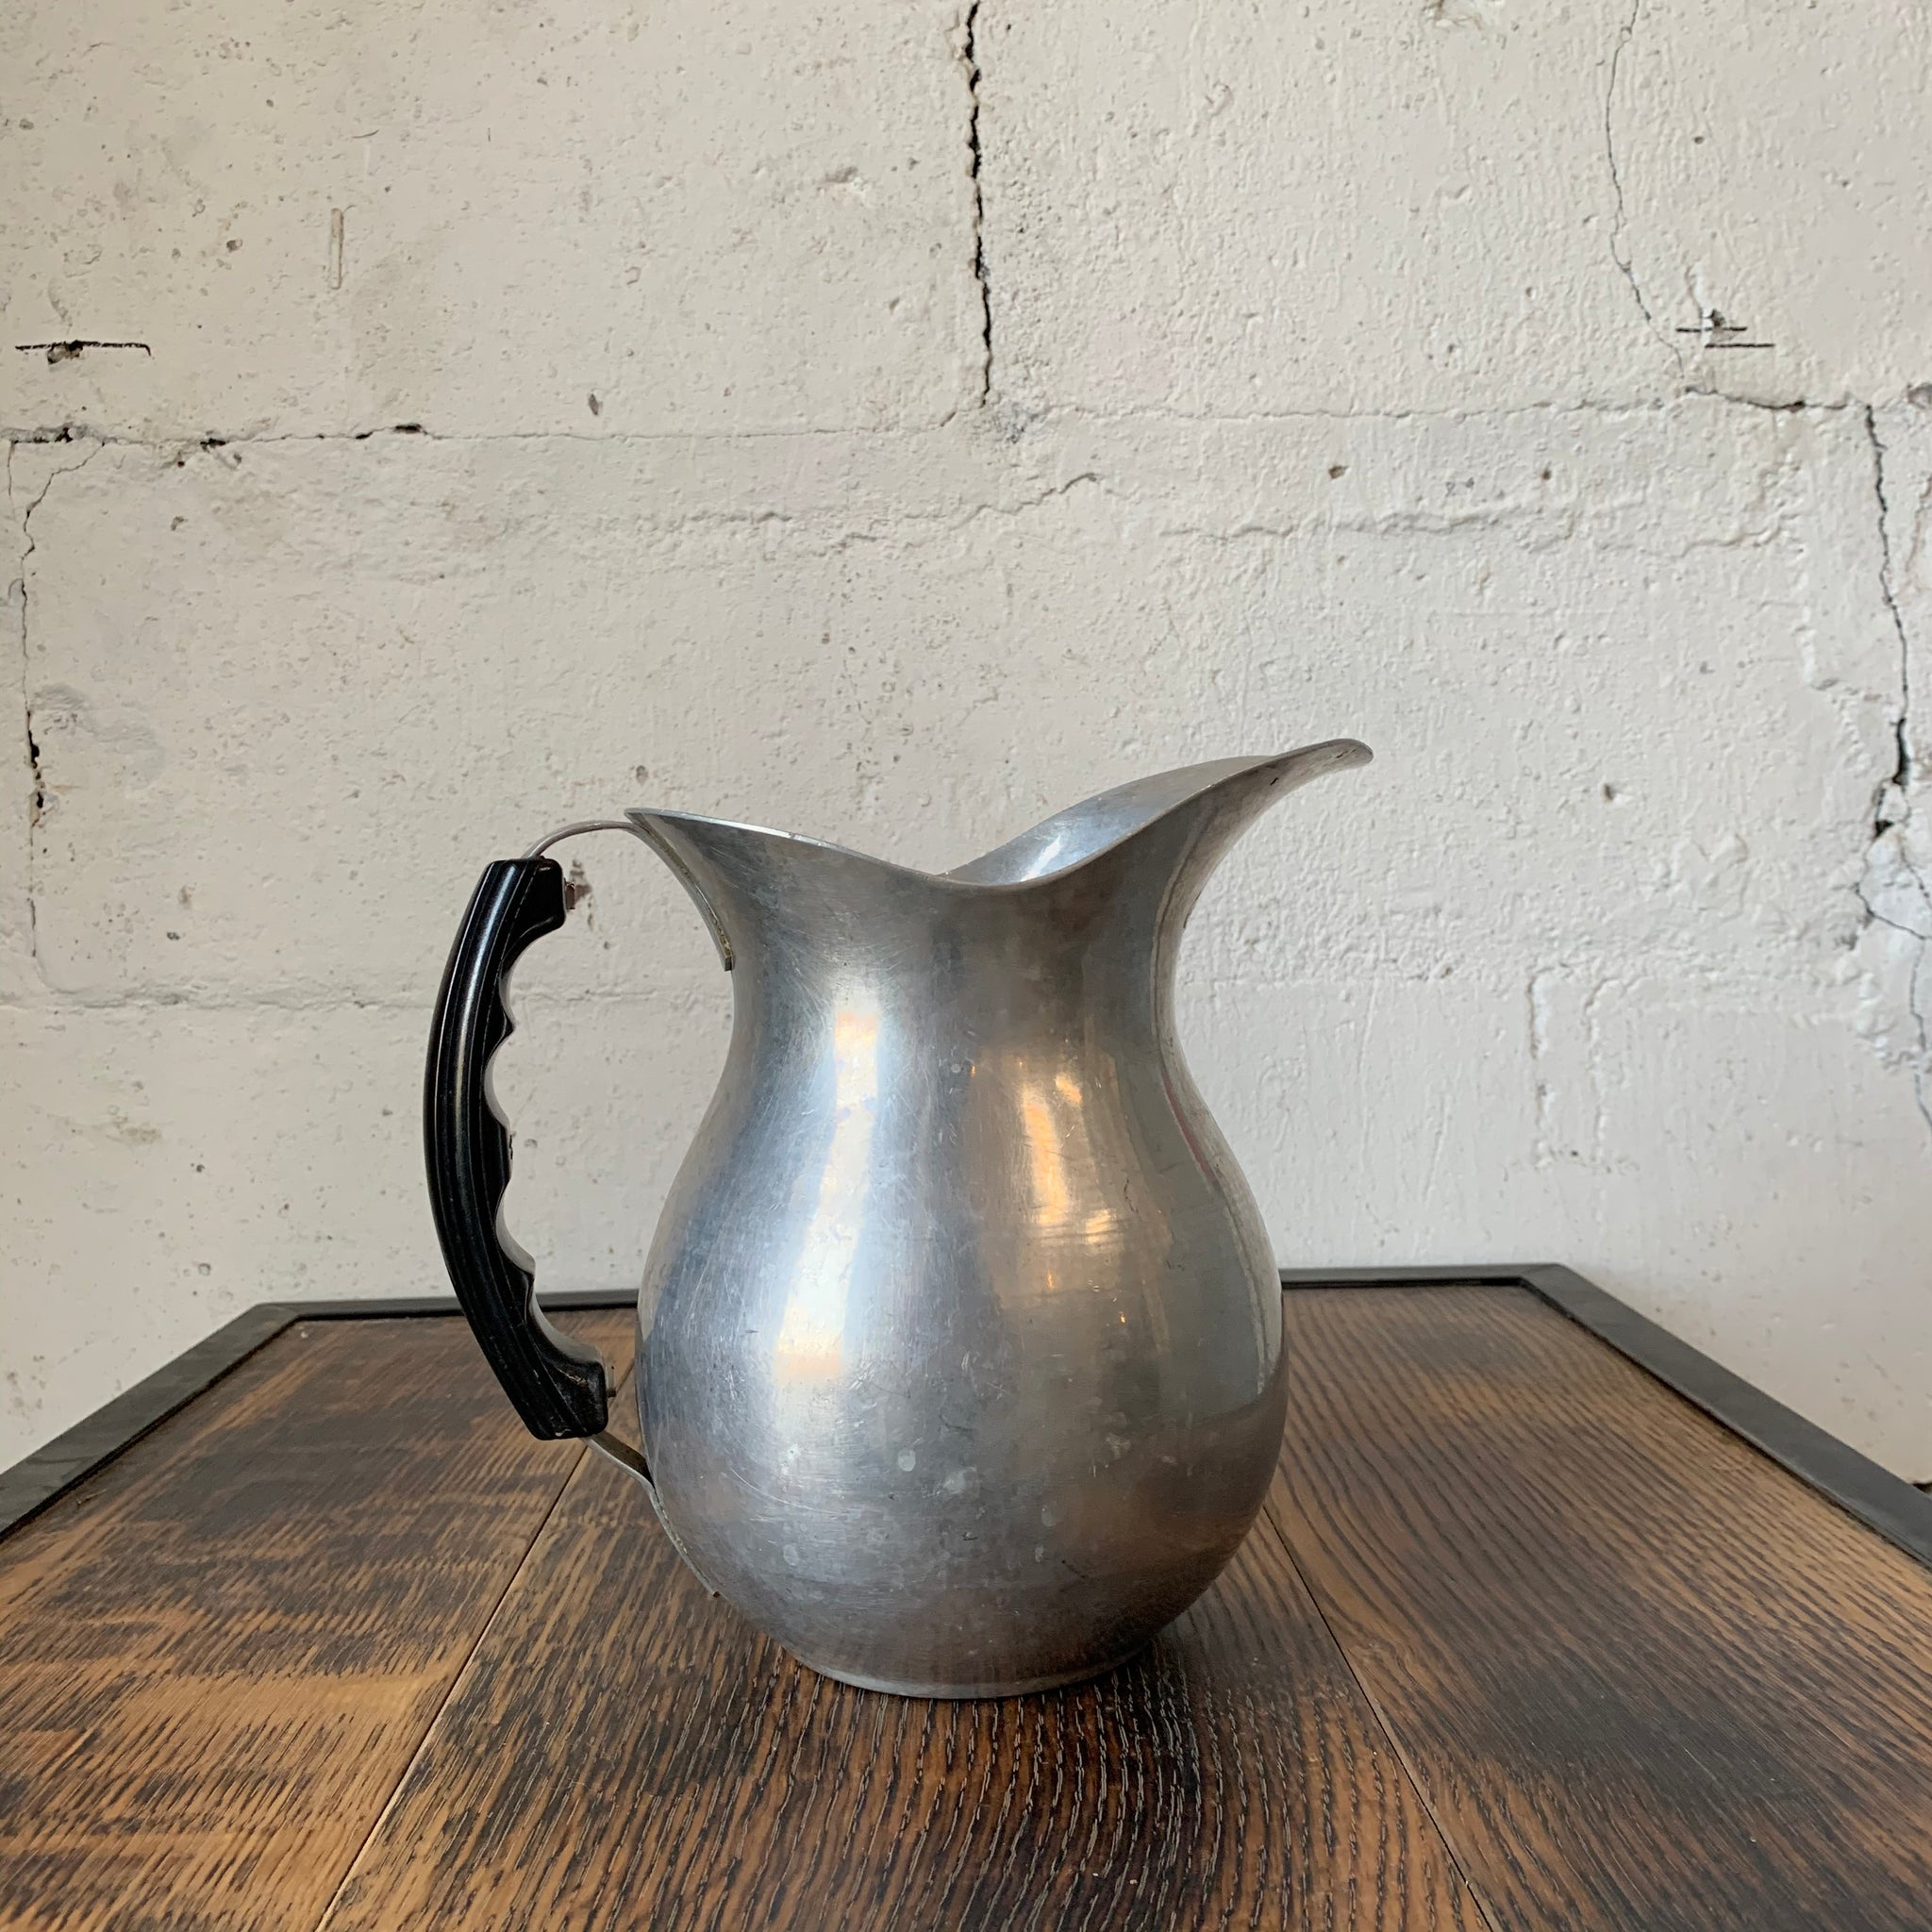 Vintage Farmhouse Pitcher